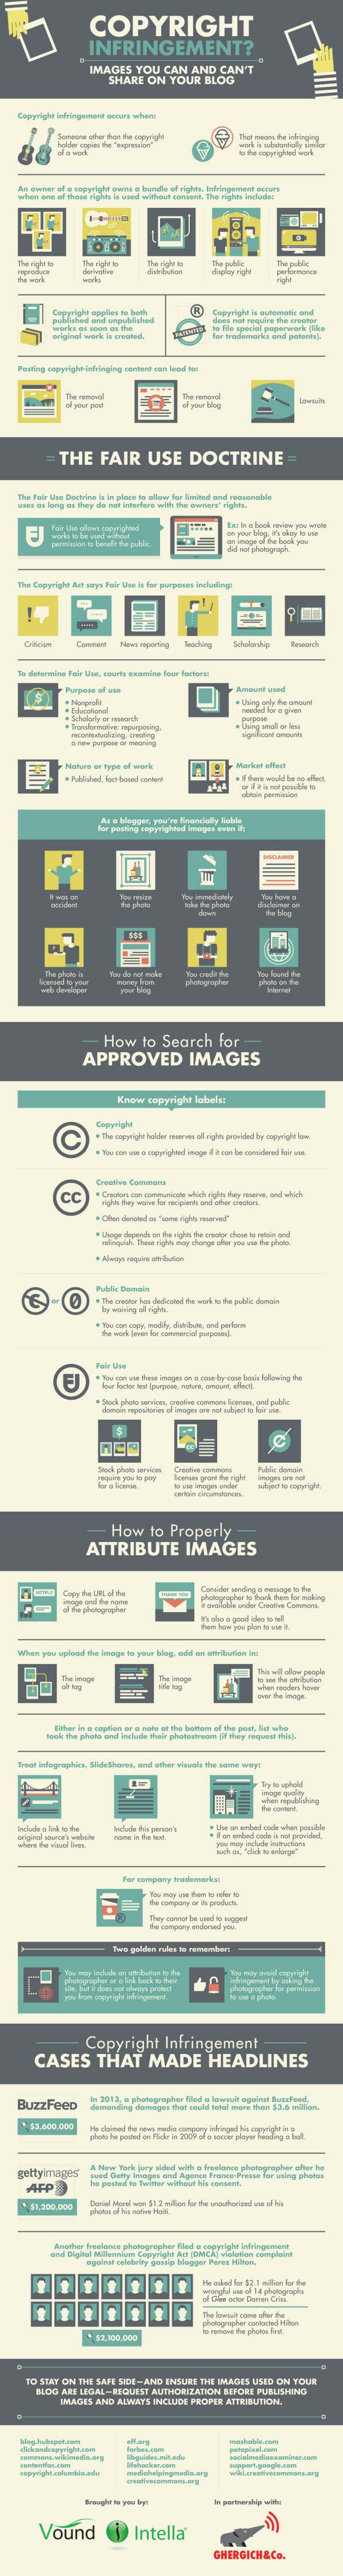 Copyright Infringement: Images You Can and Can